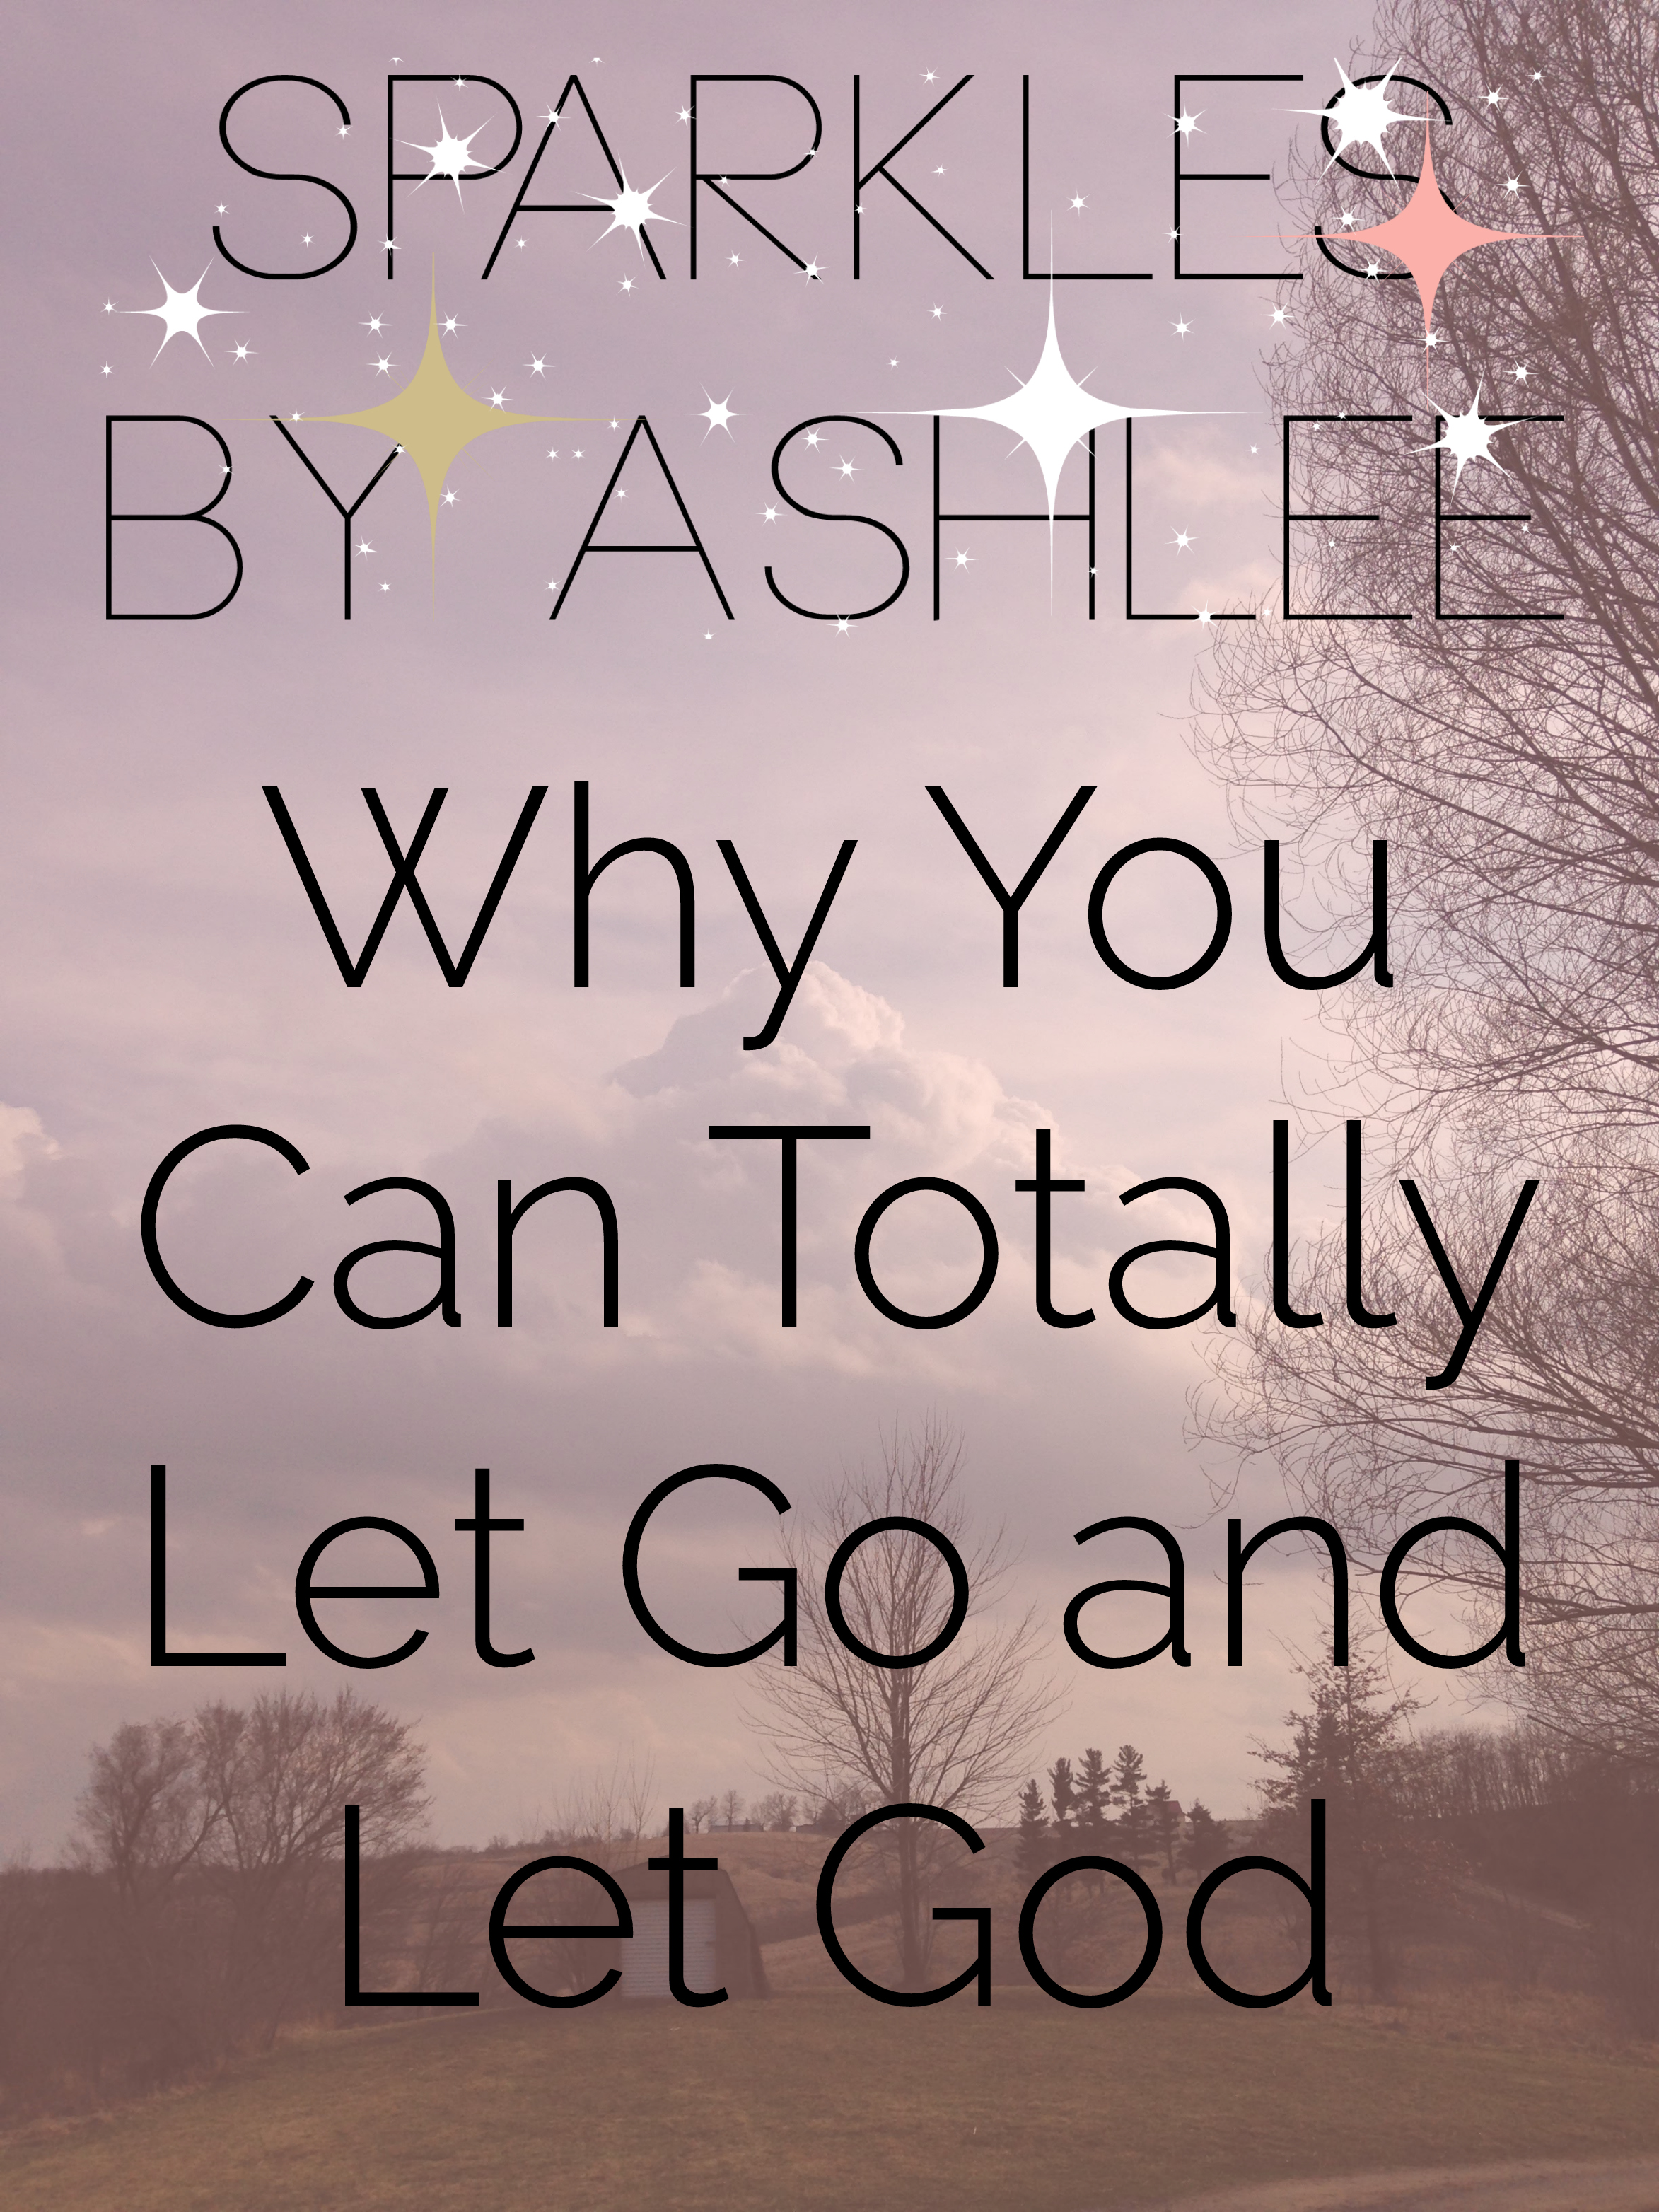 Why-You-Can-Totally-Let-Go-and-Let-God-Sparkles-by-Ashlee.jpg